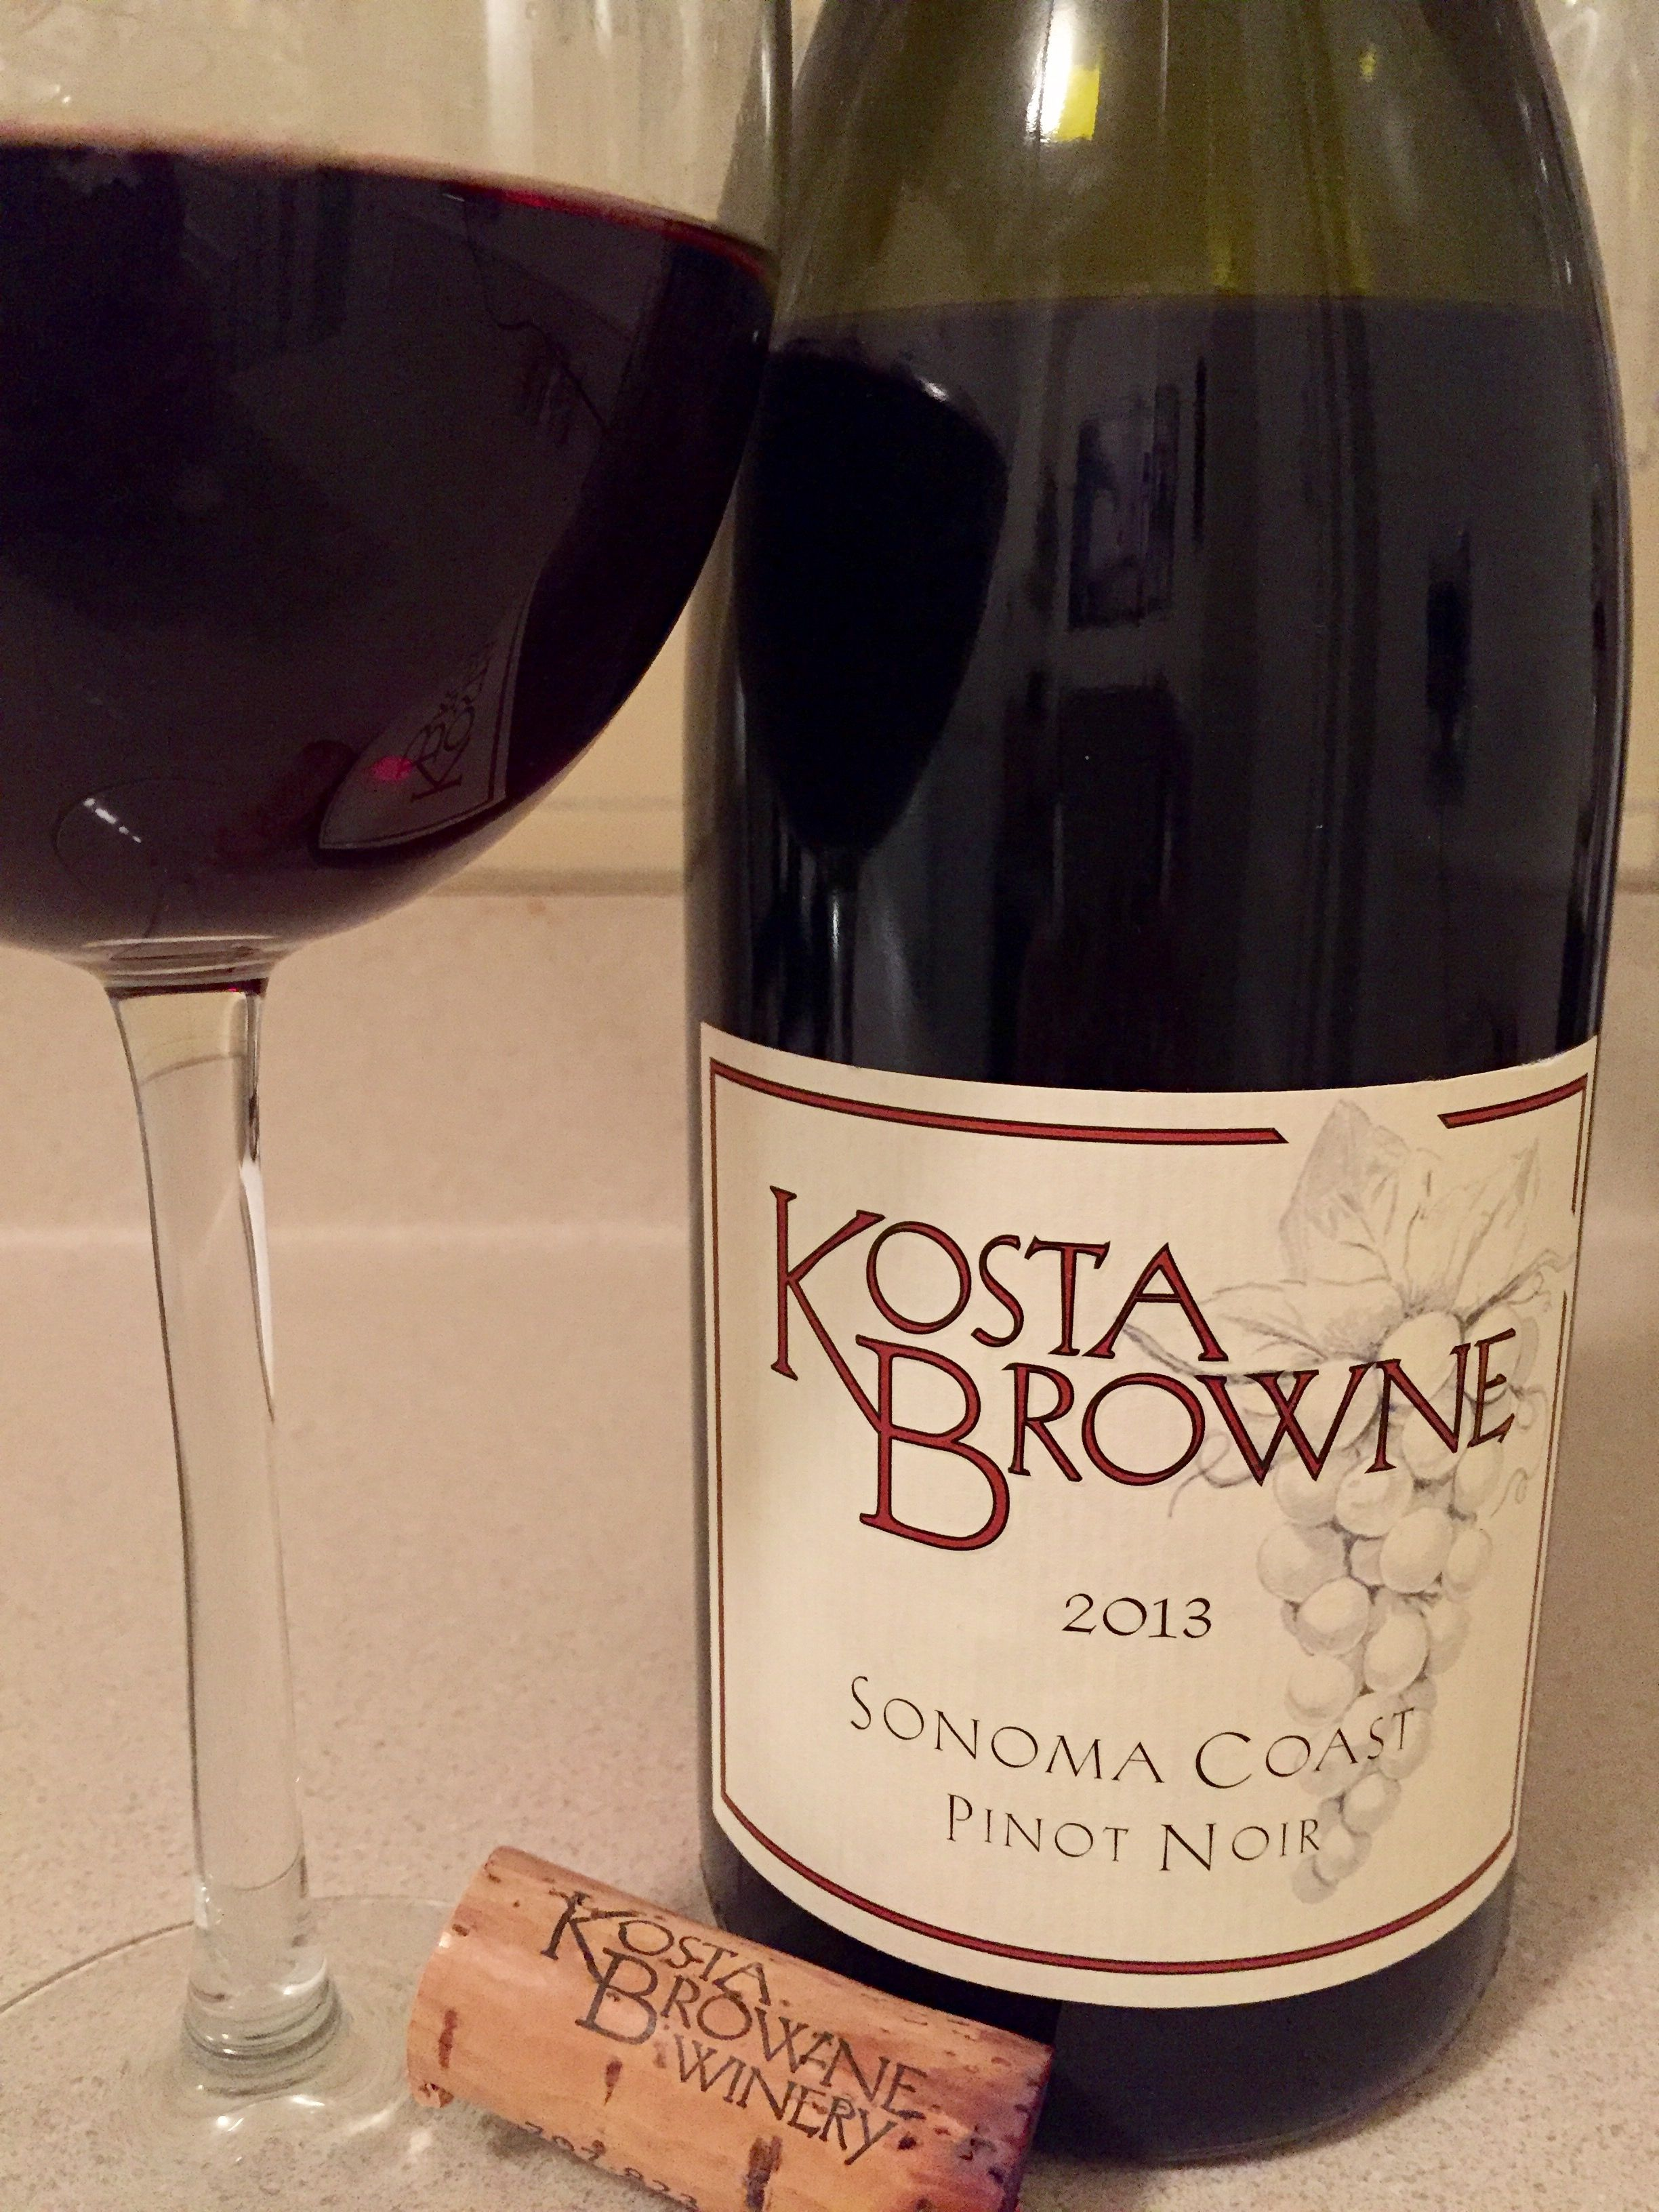 Kosta Browne 2013 Sonoma County Pinot Noir Personalized